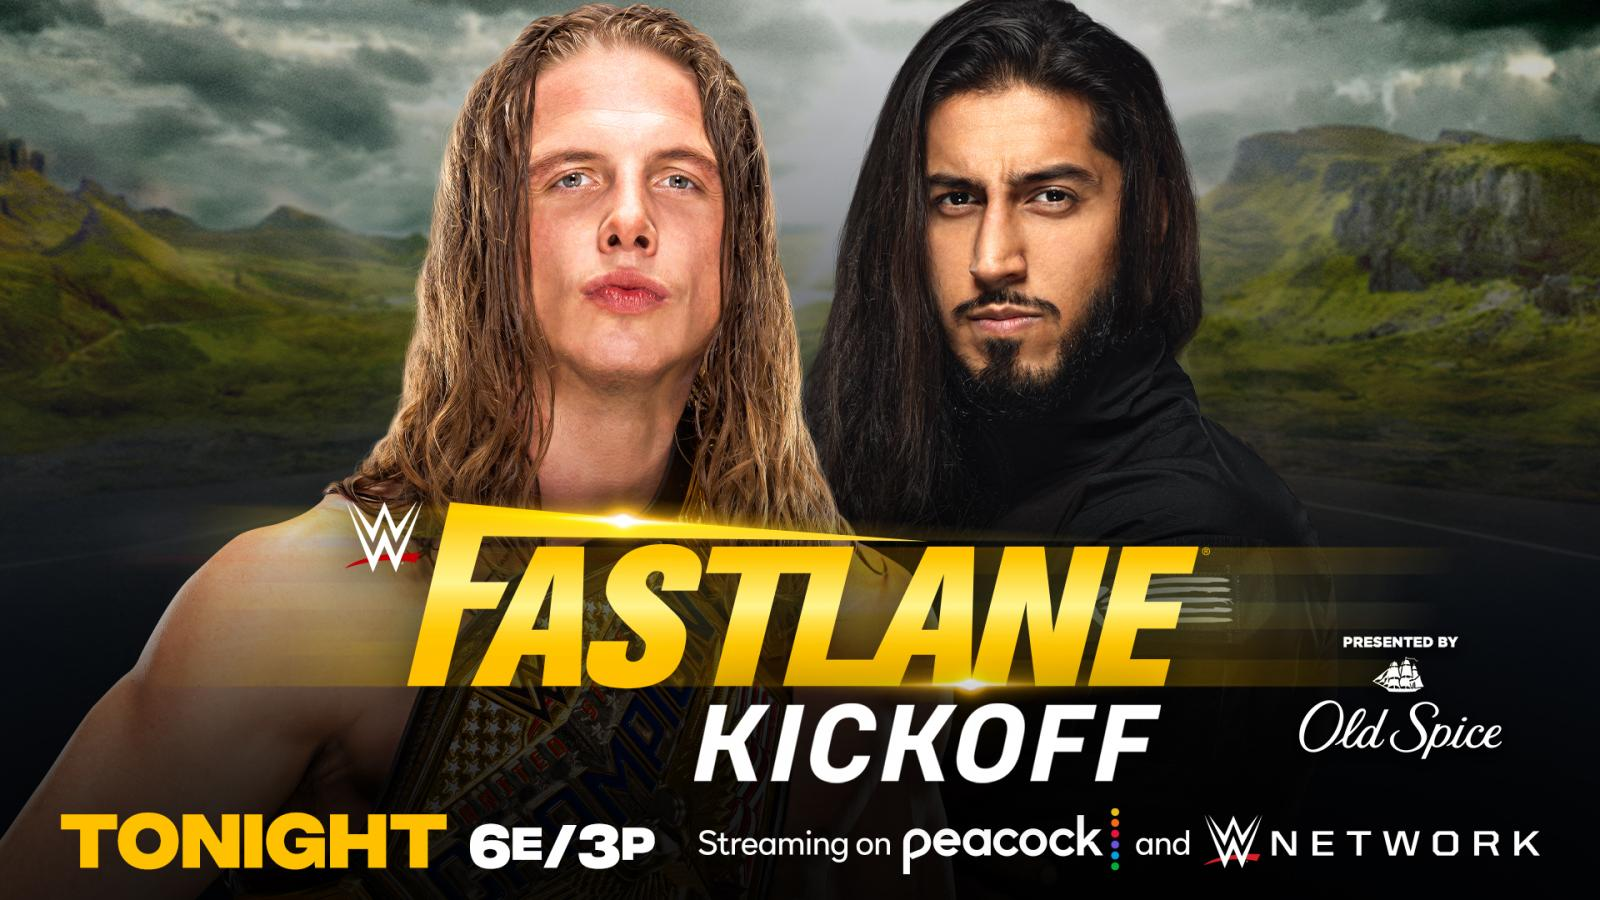 WWE Fastlane Match Moved To Pre-Show, Opener For Tonight Revealed, Kickoff Video